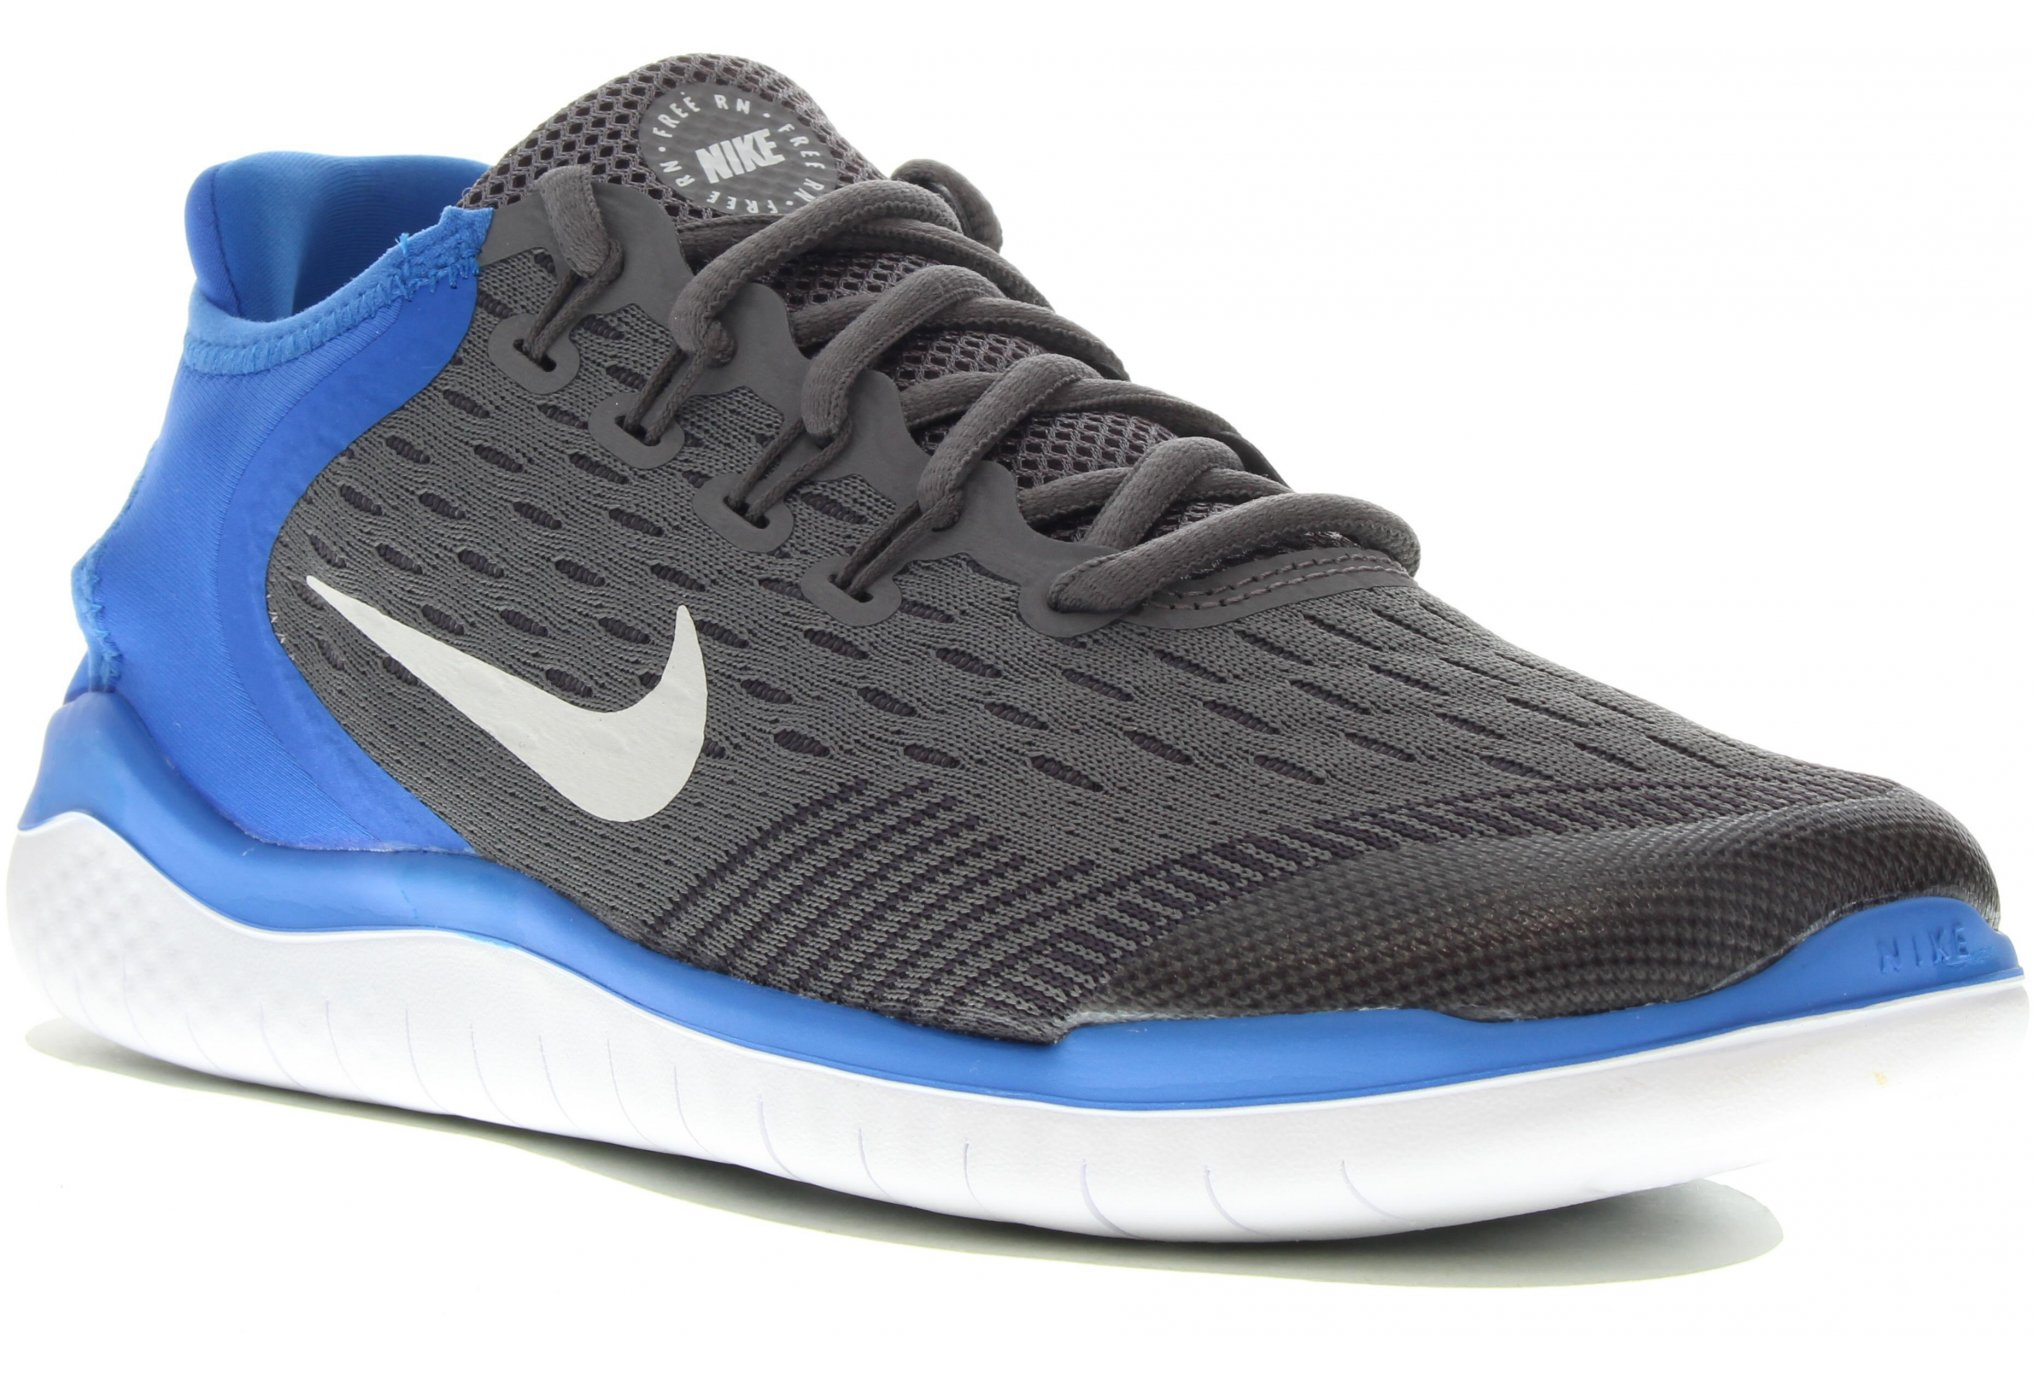 Nike Free RN Junior Chaussures homme